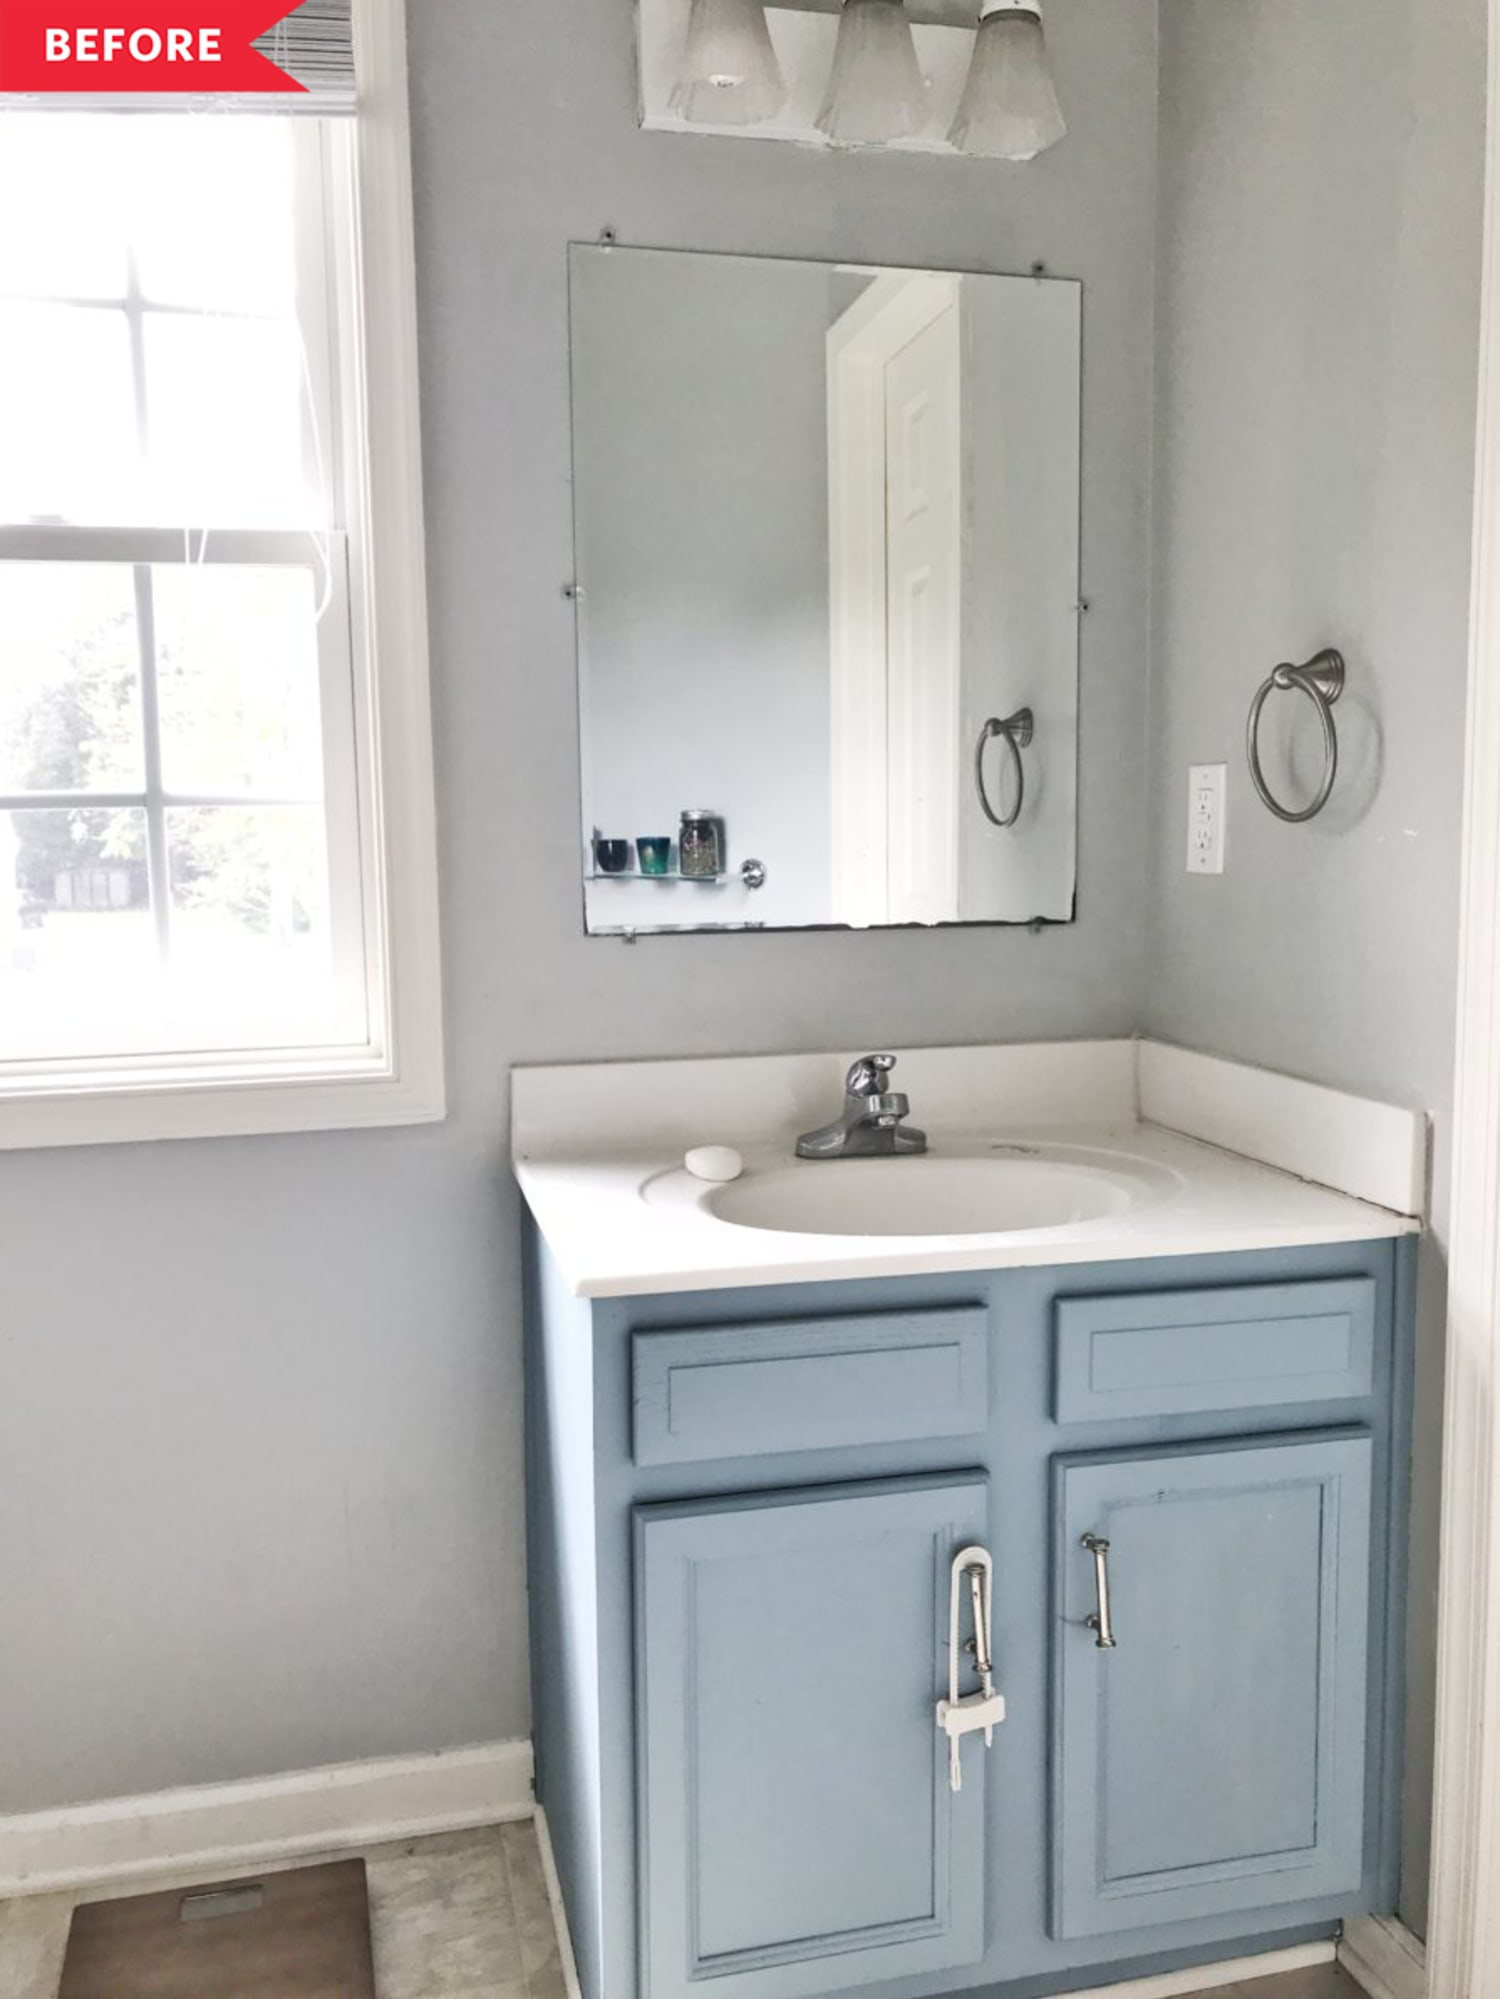 Before and After: This Builder-Grade Bathroom's Chic Transformation Cost Under $500